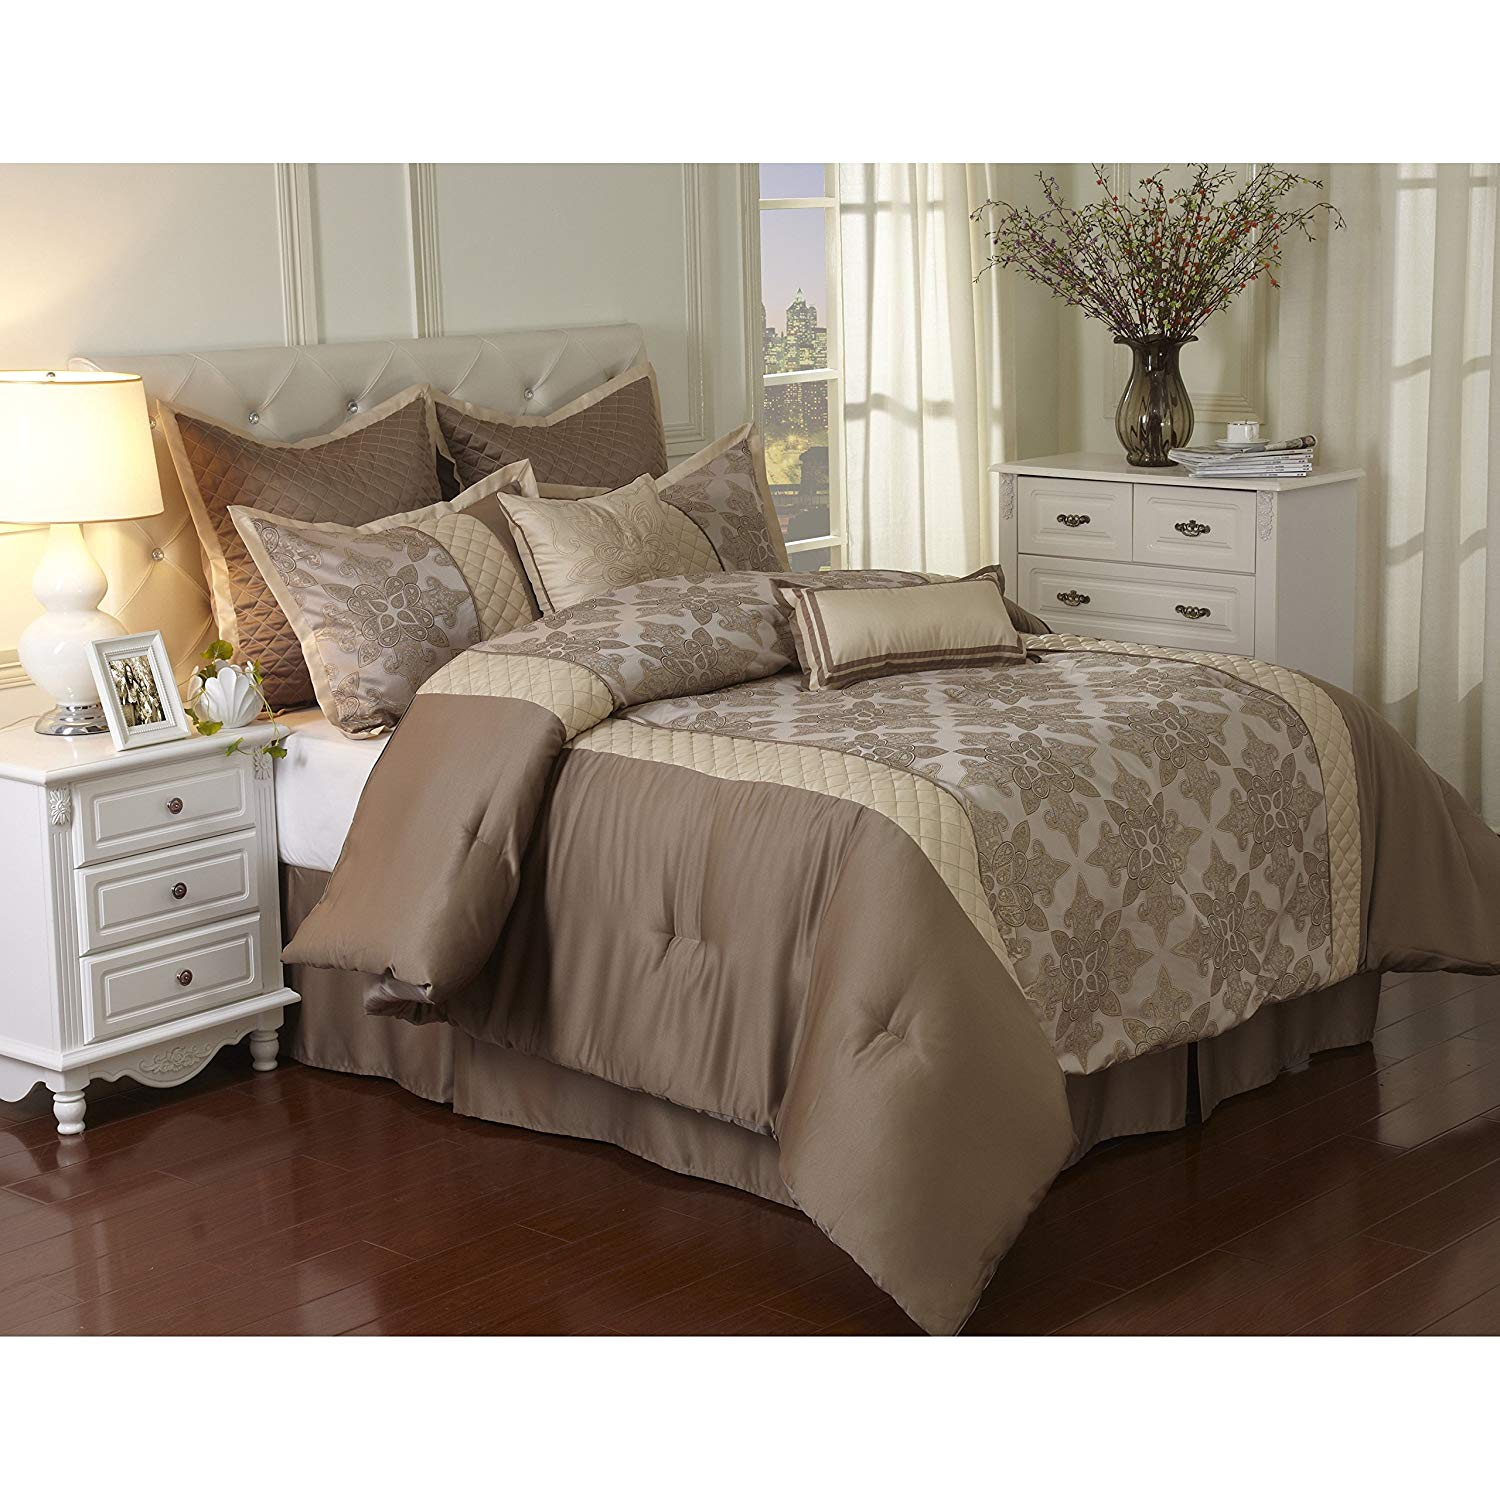 8 Piece Light Brown Damask Geometric Printed Comforter Set Queen, Grey Tan Textured Solid Blocks Jacquard Weave Pattern Adult Bedding Master Bedroom Traditional Casual Colorful, Polyester